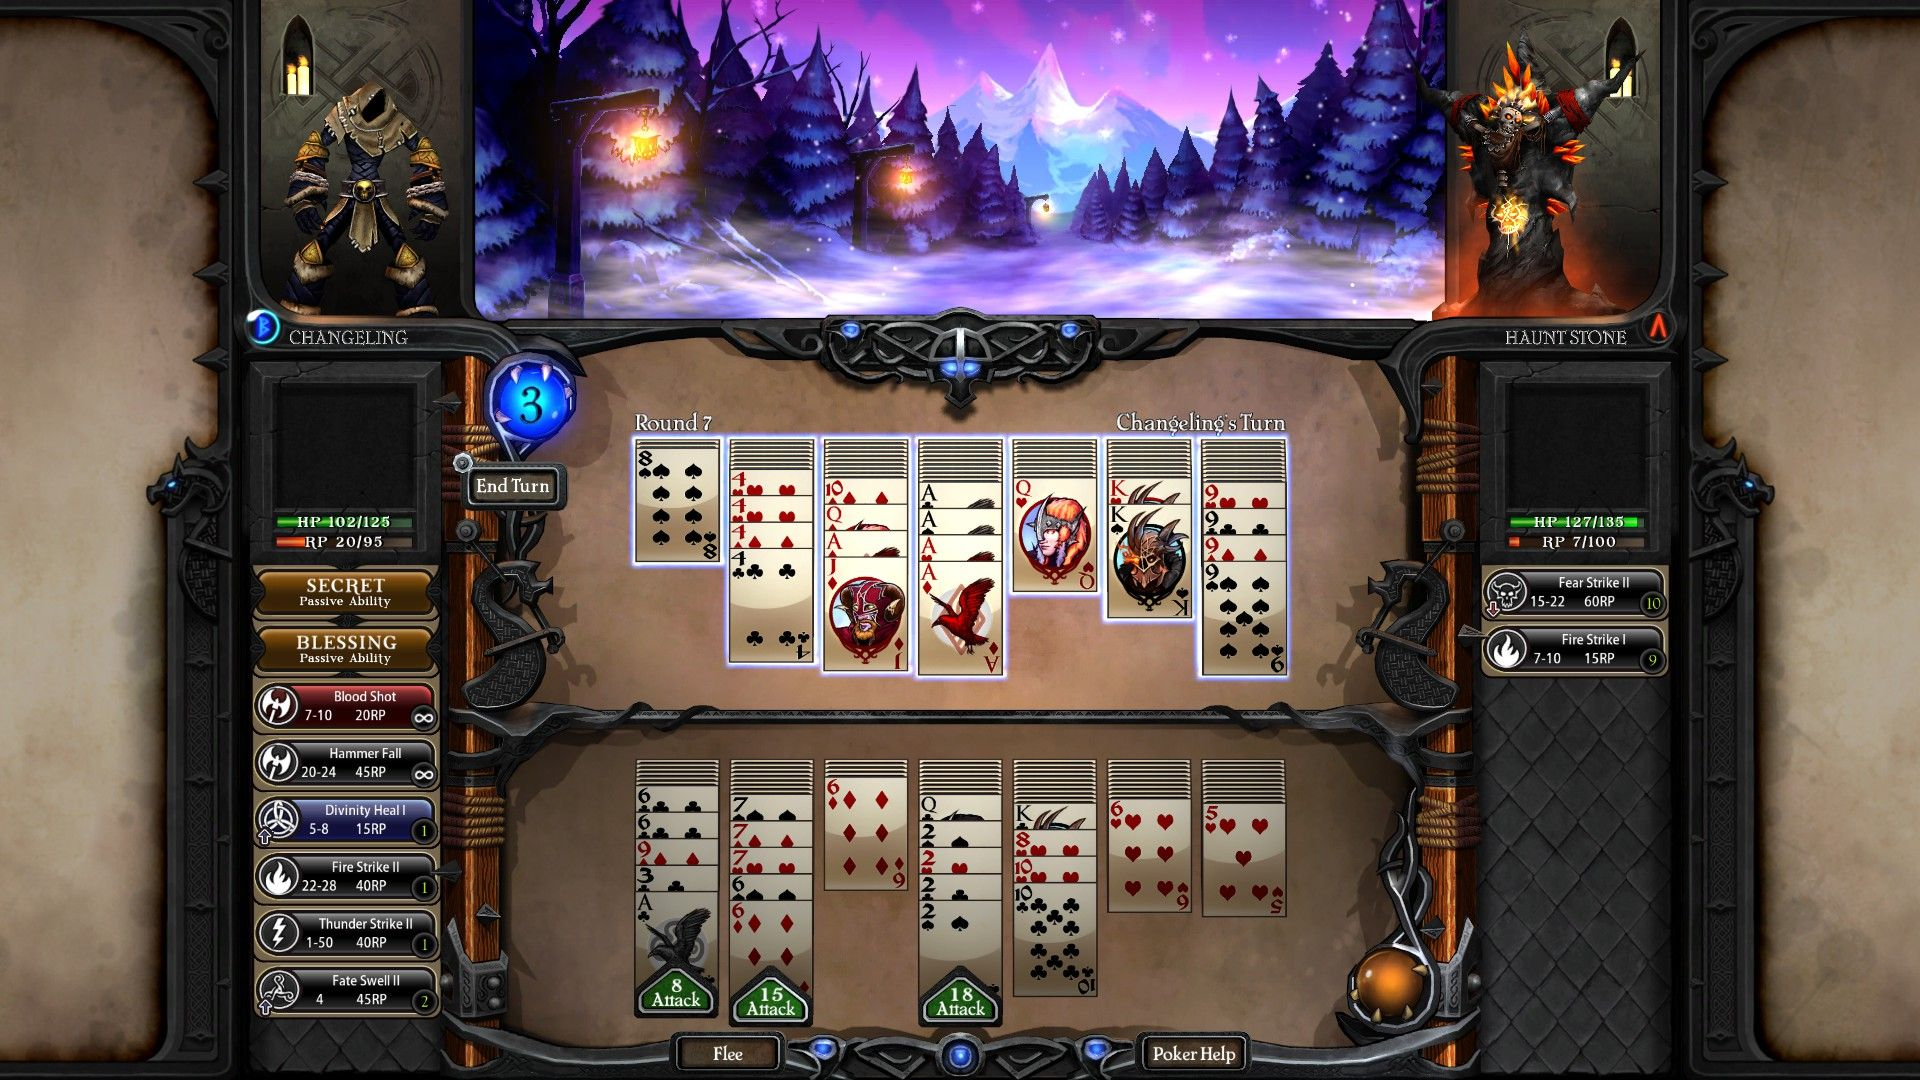 cool card game layout.